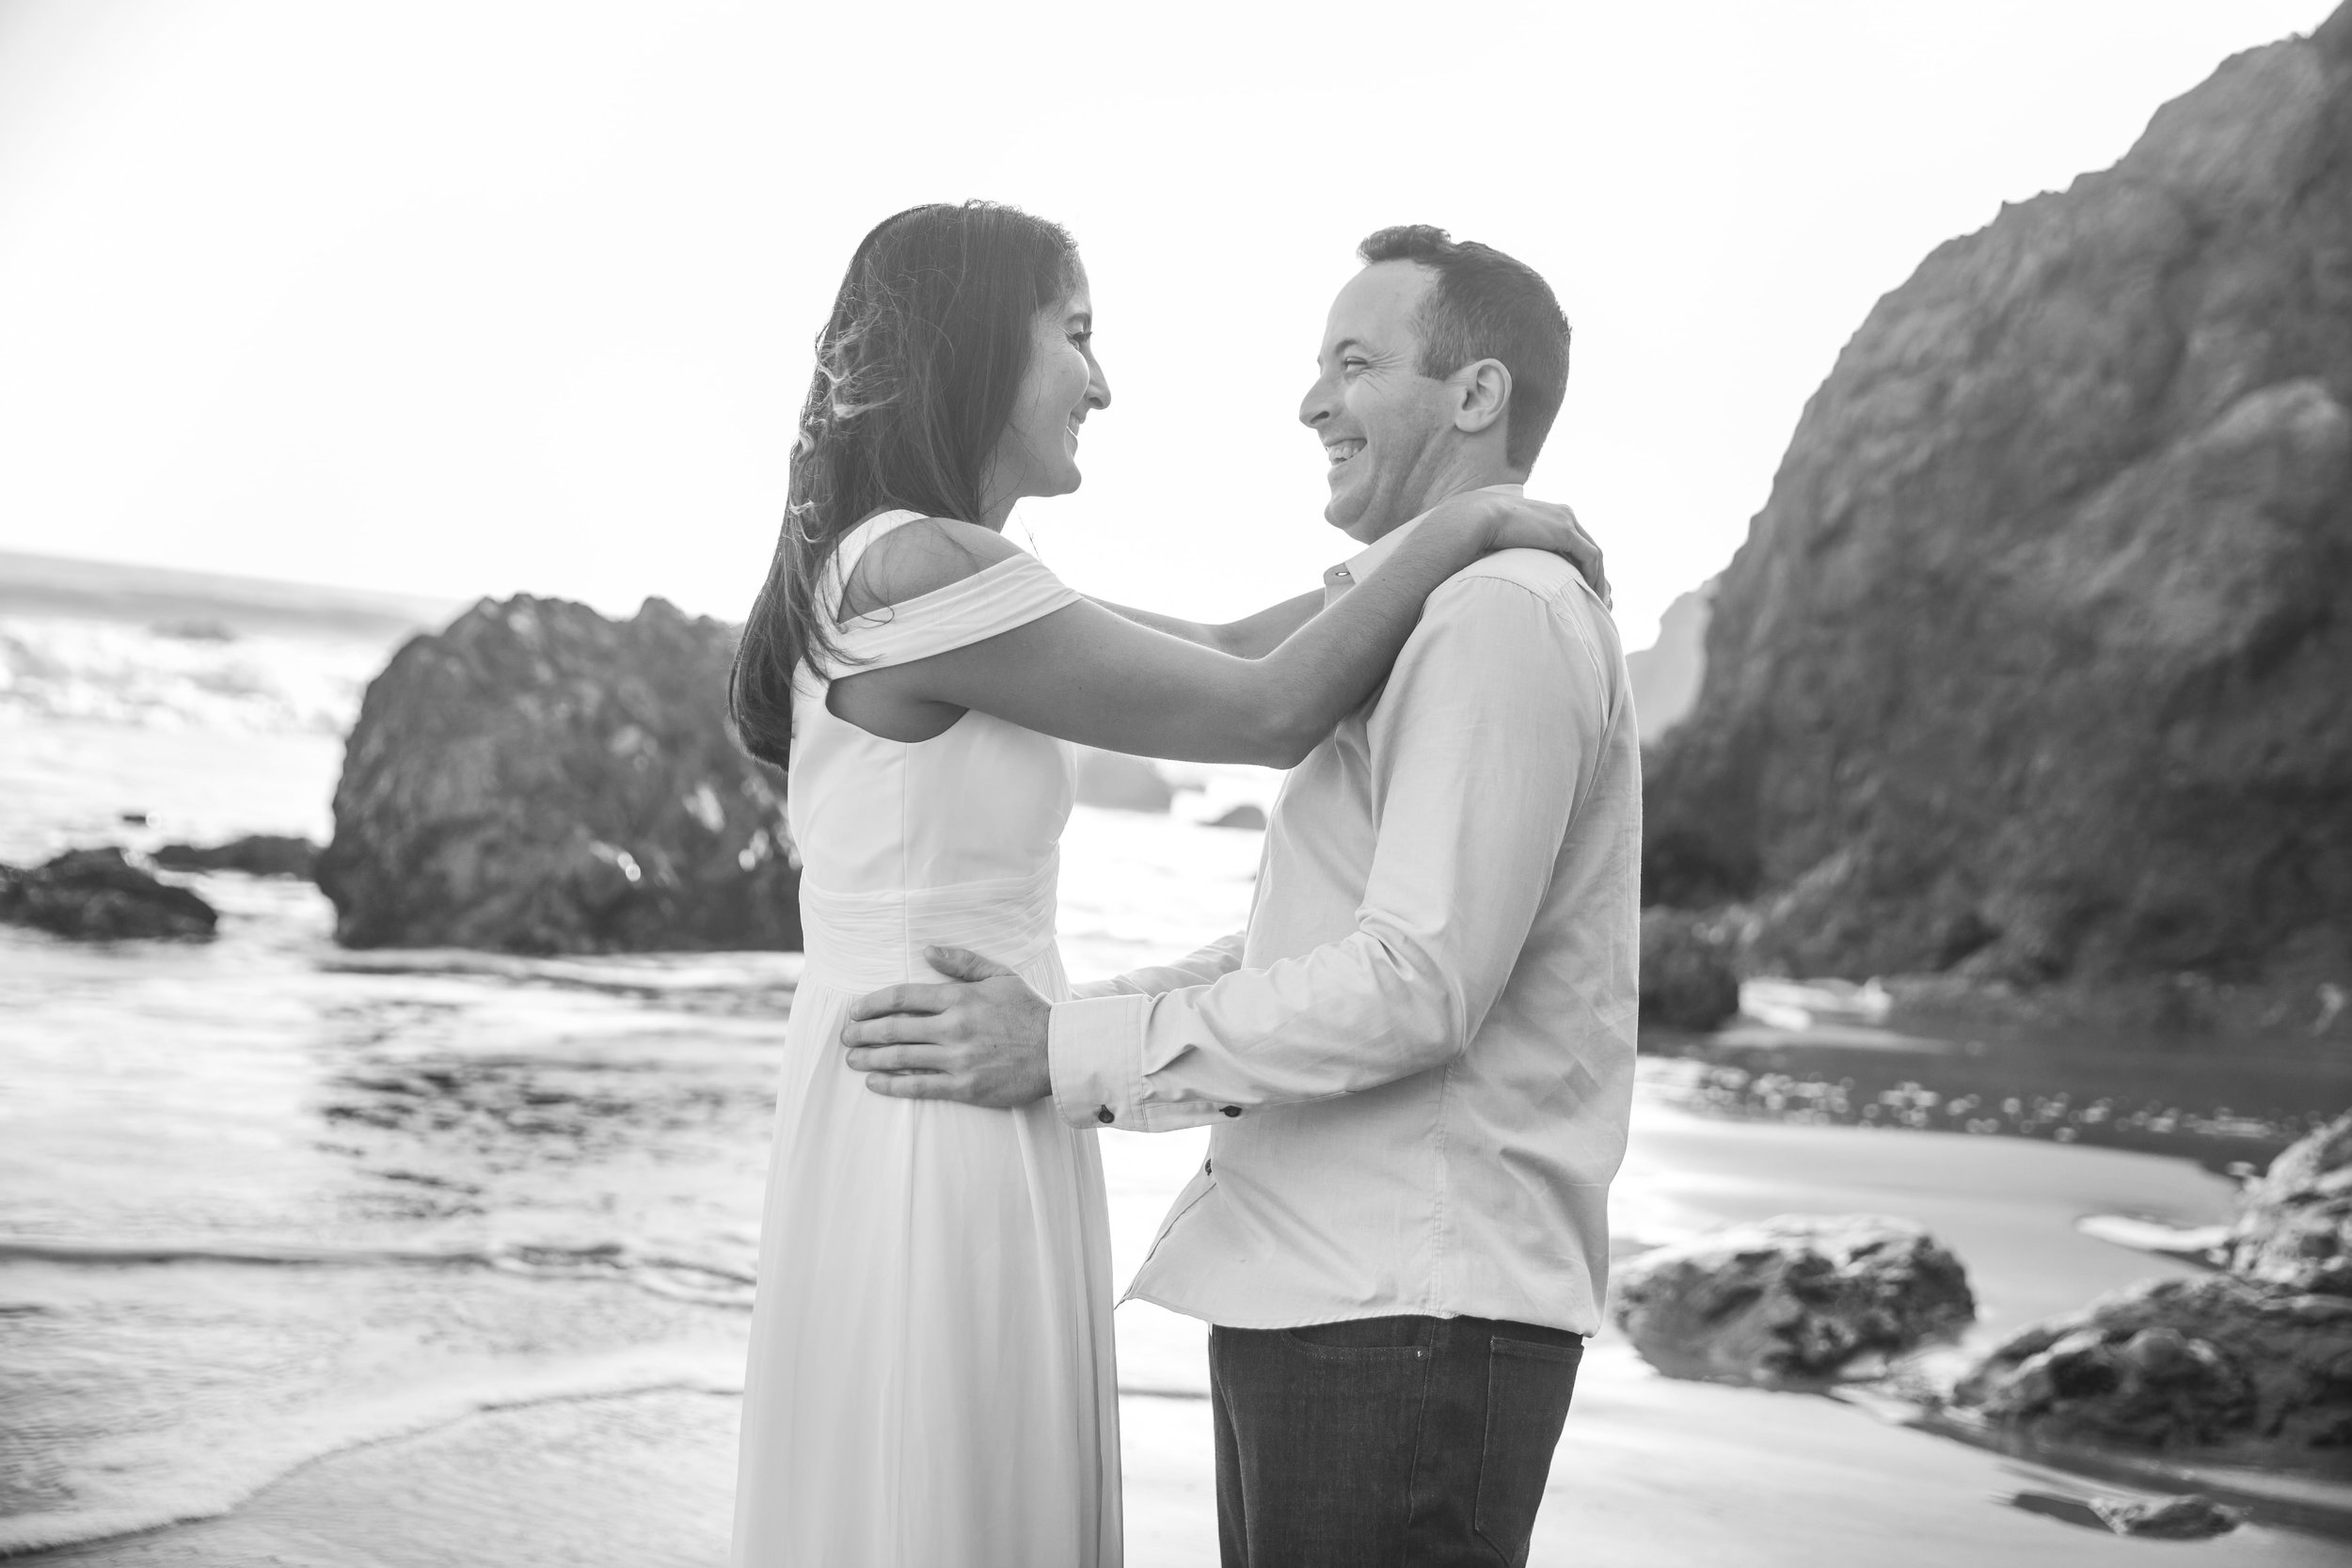 California Engagement Photography - Black and white photo of an engaged couple laughing on the beach.